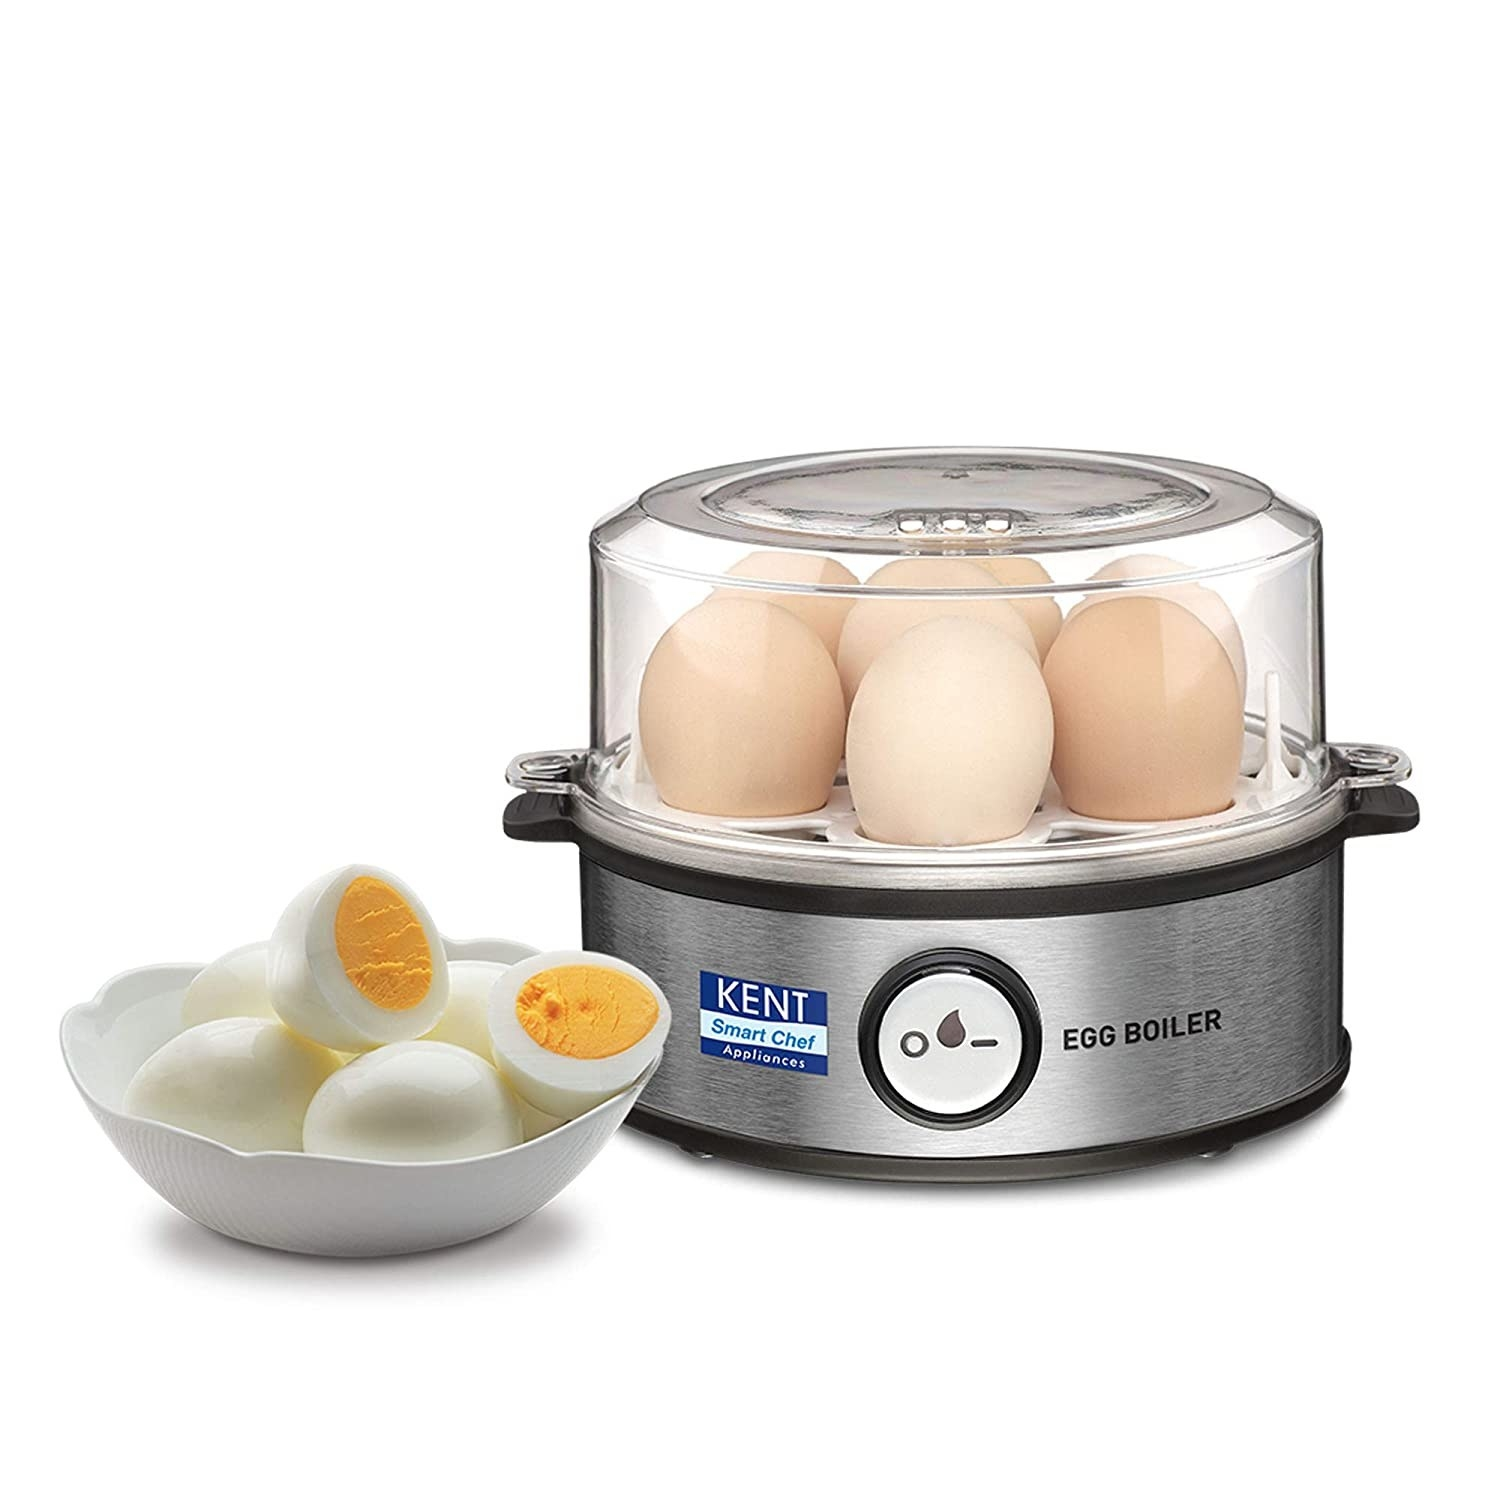 The egg boiler pictured with eggs in it, next to a bowl of boiled and peeled eggs.